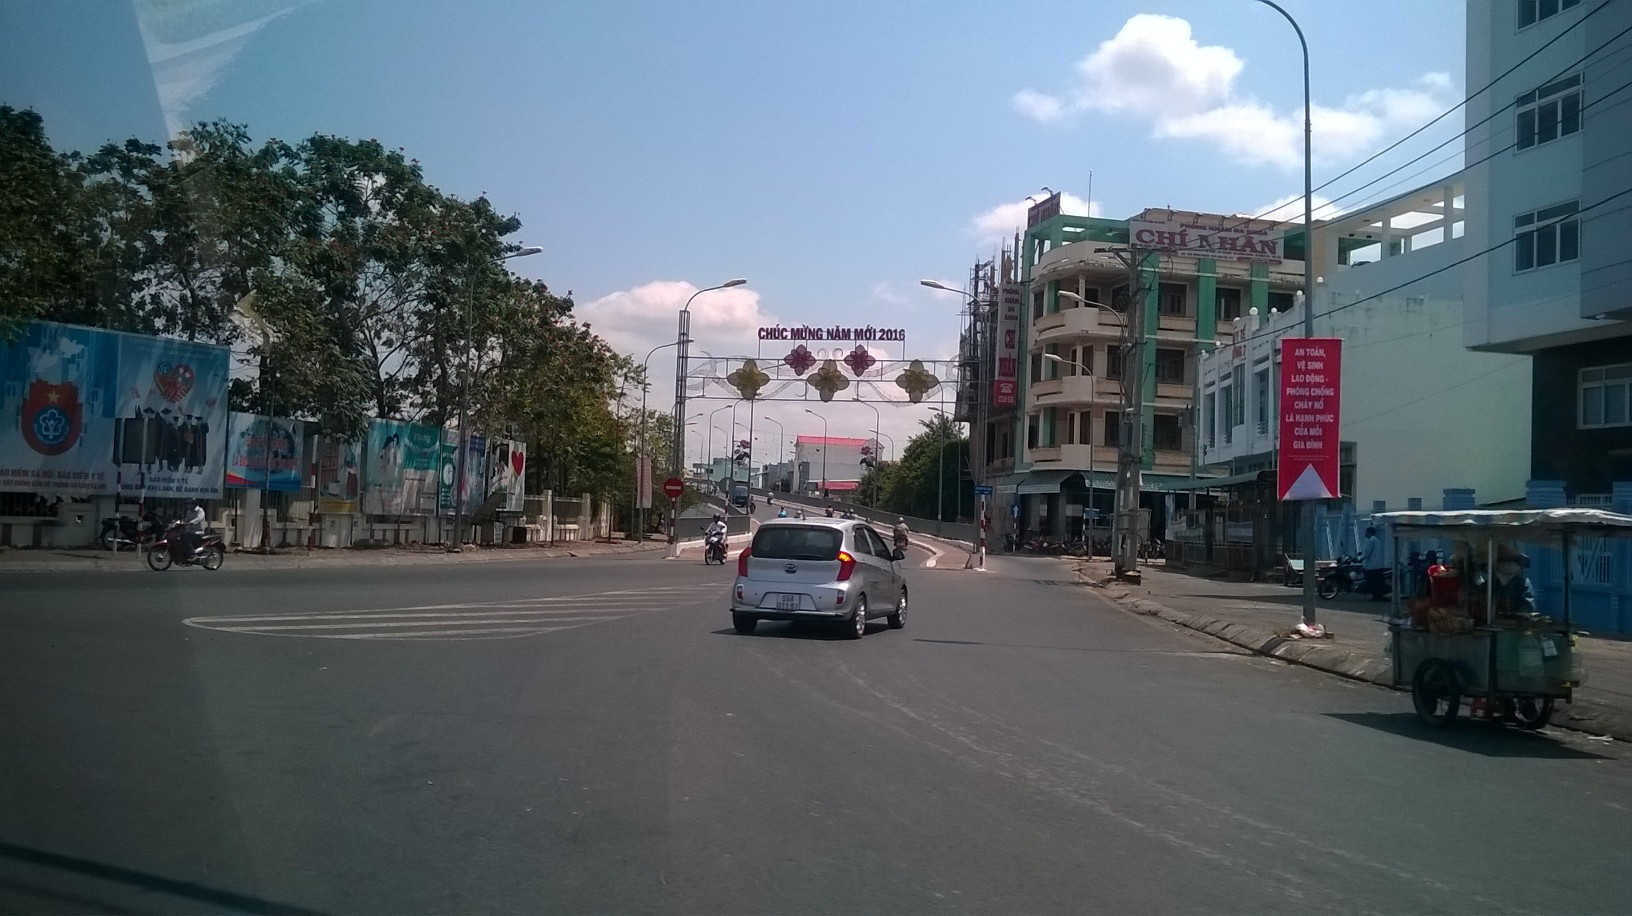 ca mau architecture happy new year banner ent town mar16